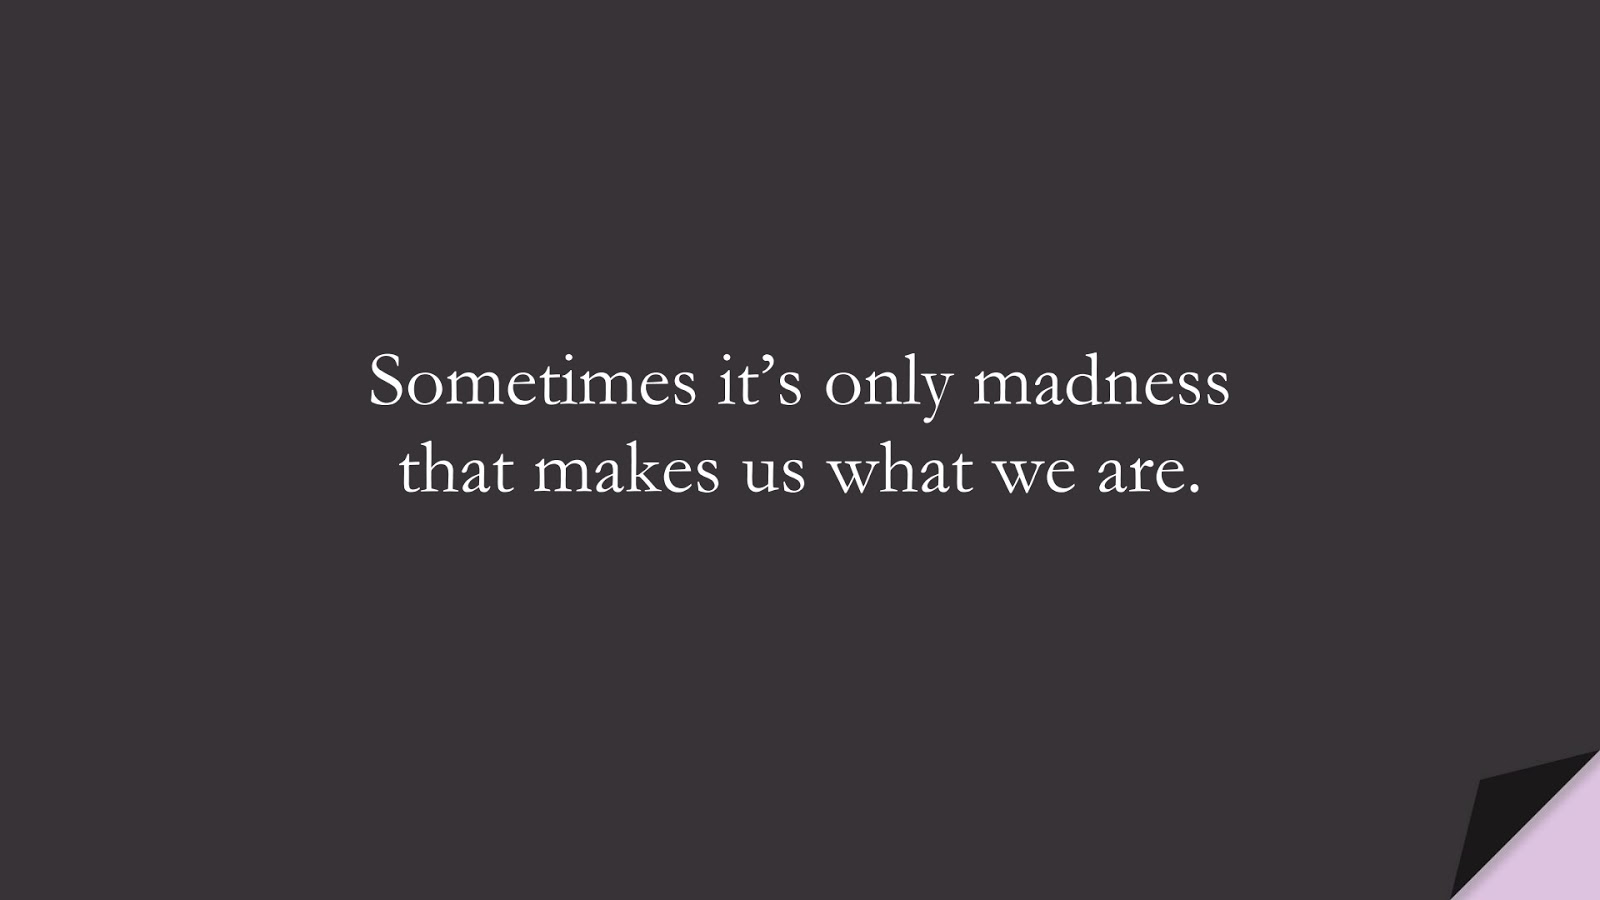 Sometimes it's only madness that makes us what we are.FALSE